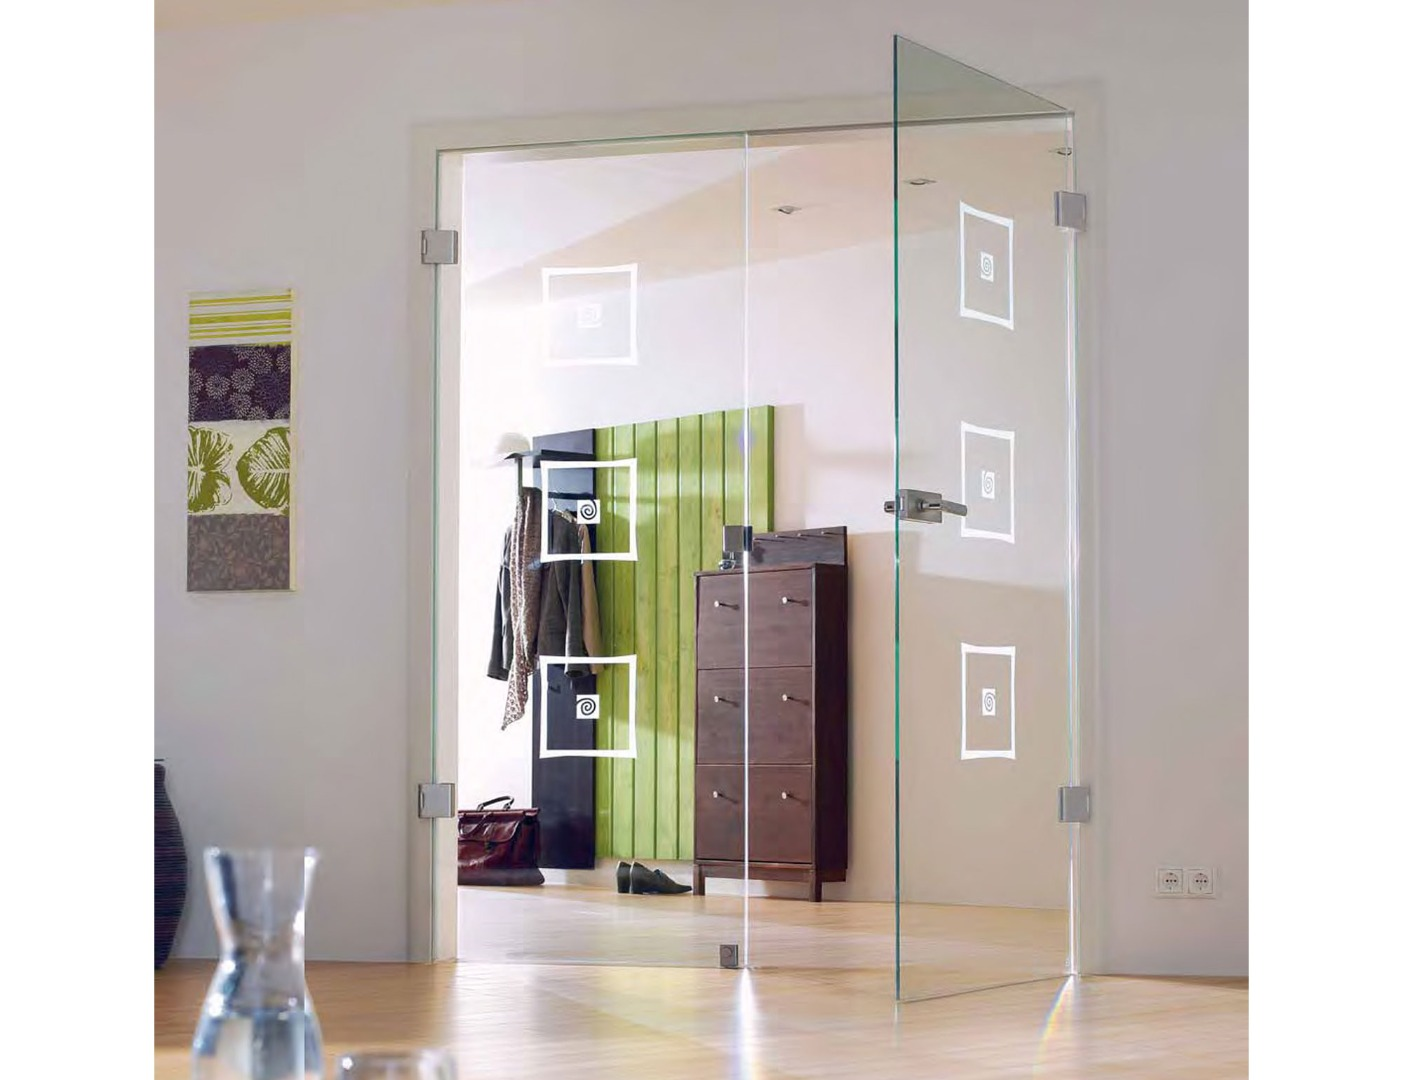 Made to measure glass doors frameless glass door alana glass doors glass double doors made to measure glass doors planetlyrics Gallery